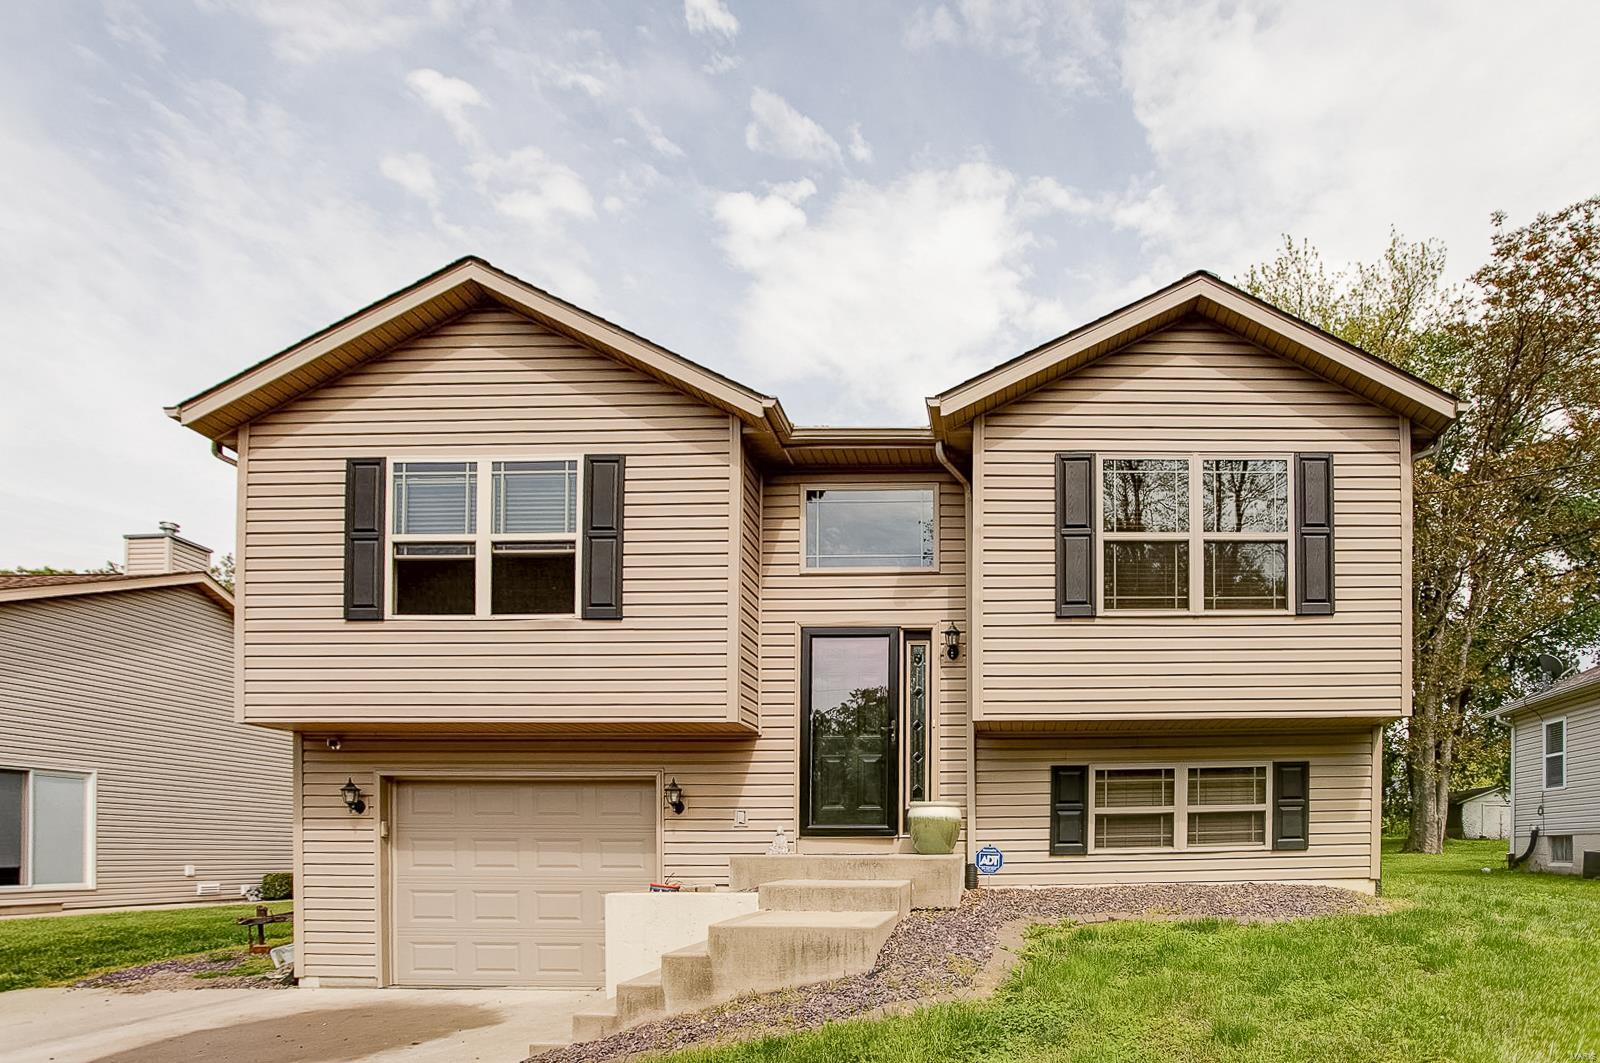 2214 Williams Property Photo - Maryville, IL real estate listing